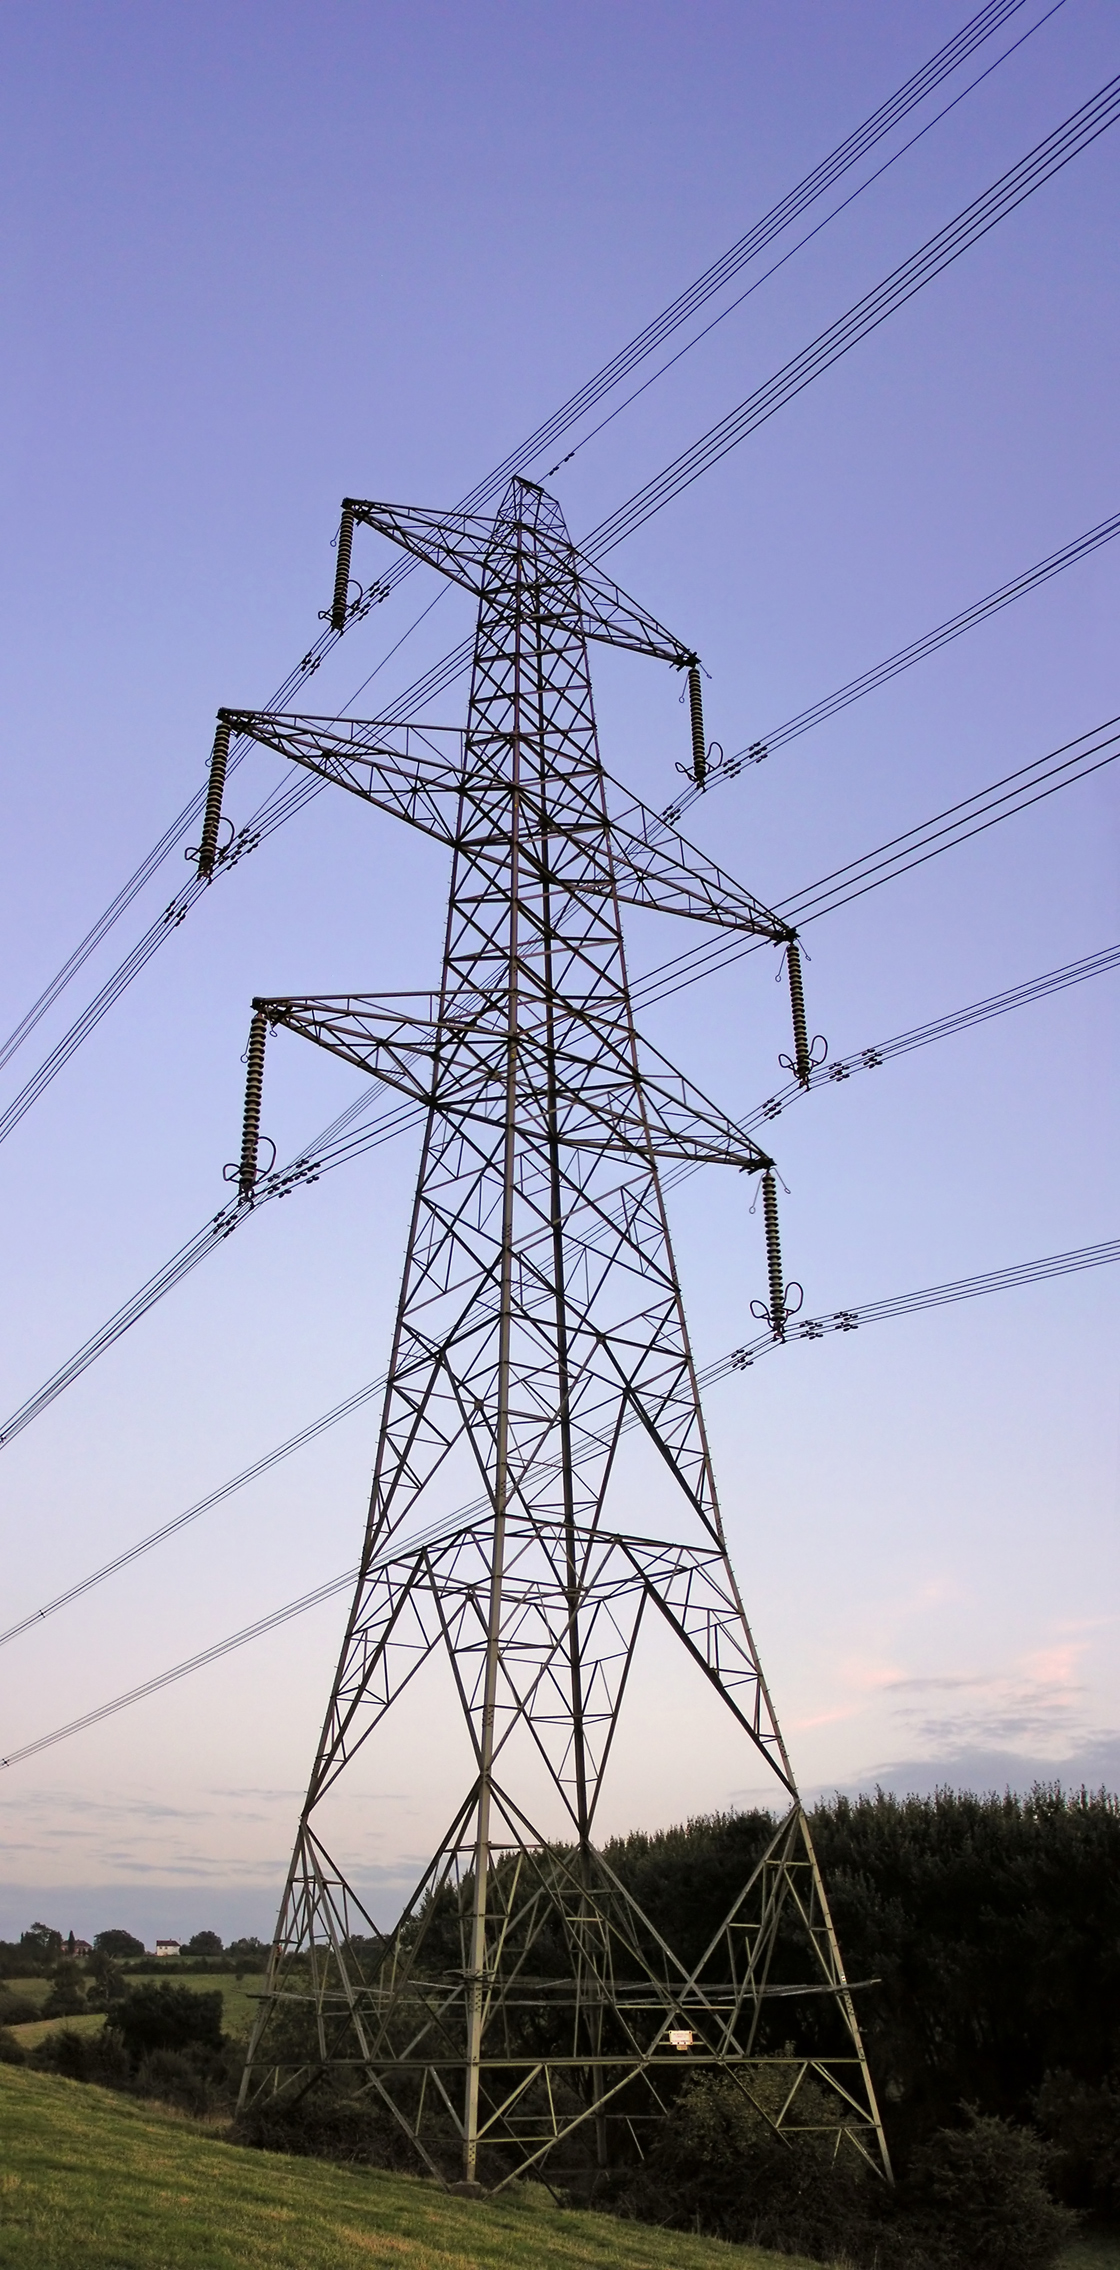 File:Pylon ds.jpg - Wikipedia, the free encyclopedia